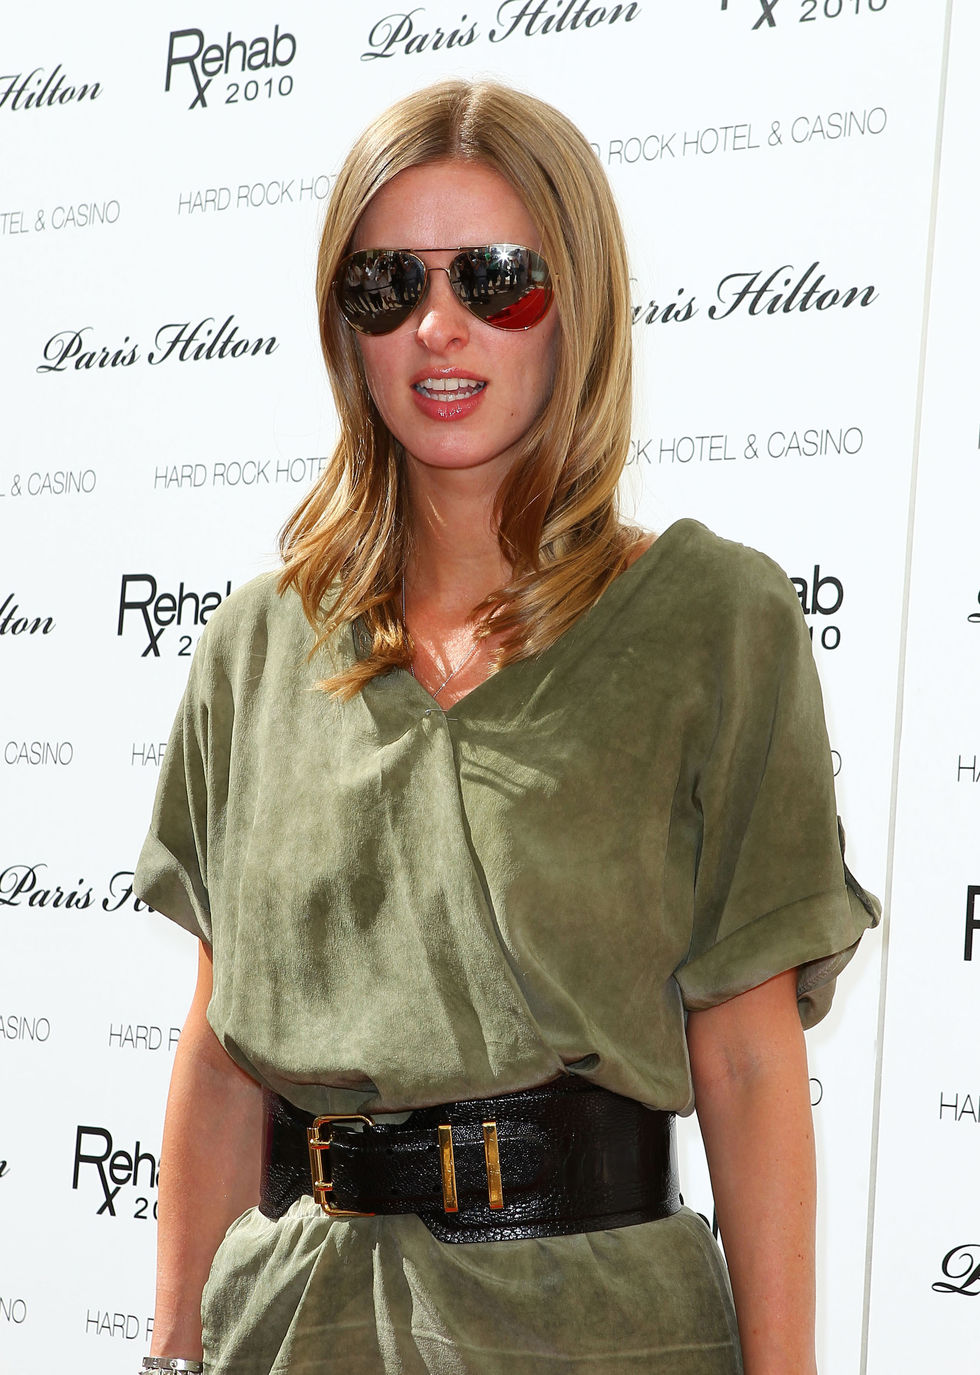 Nicky Hilton 2010 : nicky-hilton-leggy-candids-at-the-ultimate-daytime-pool-party-in-las-vegas-04